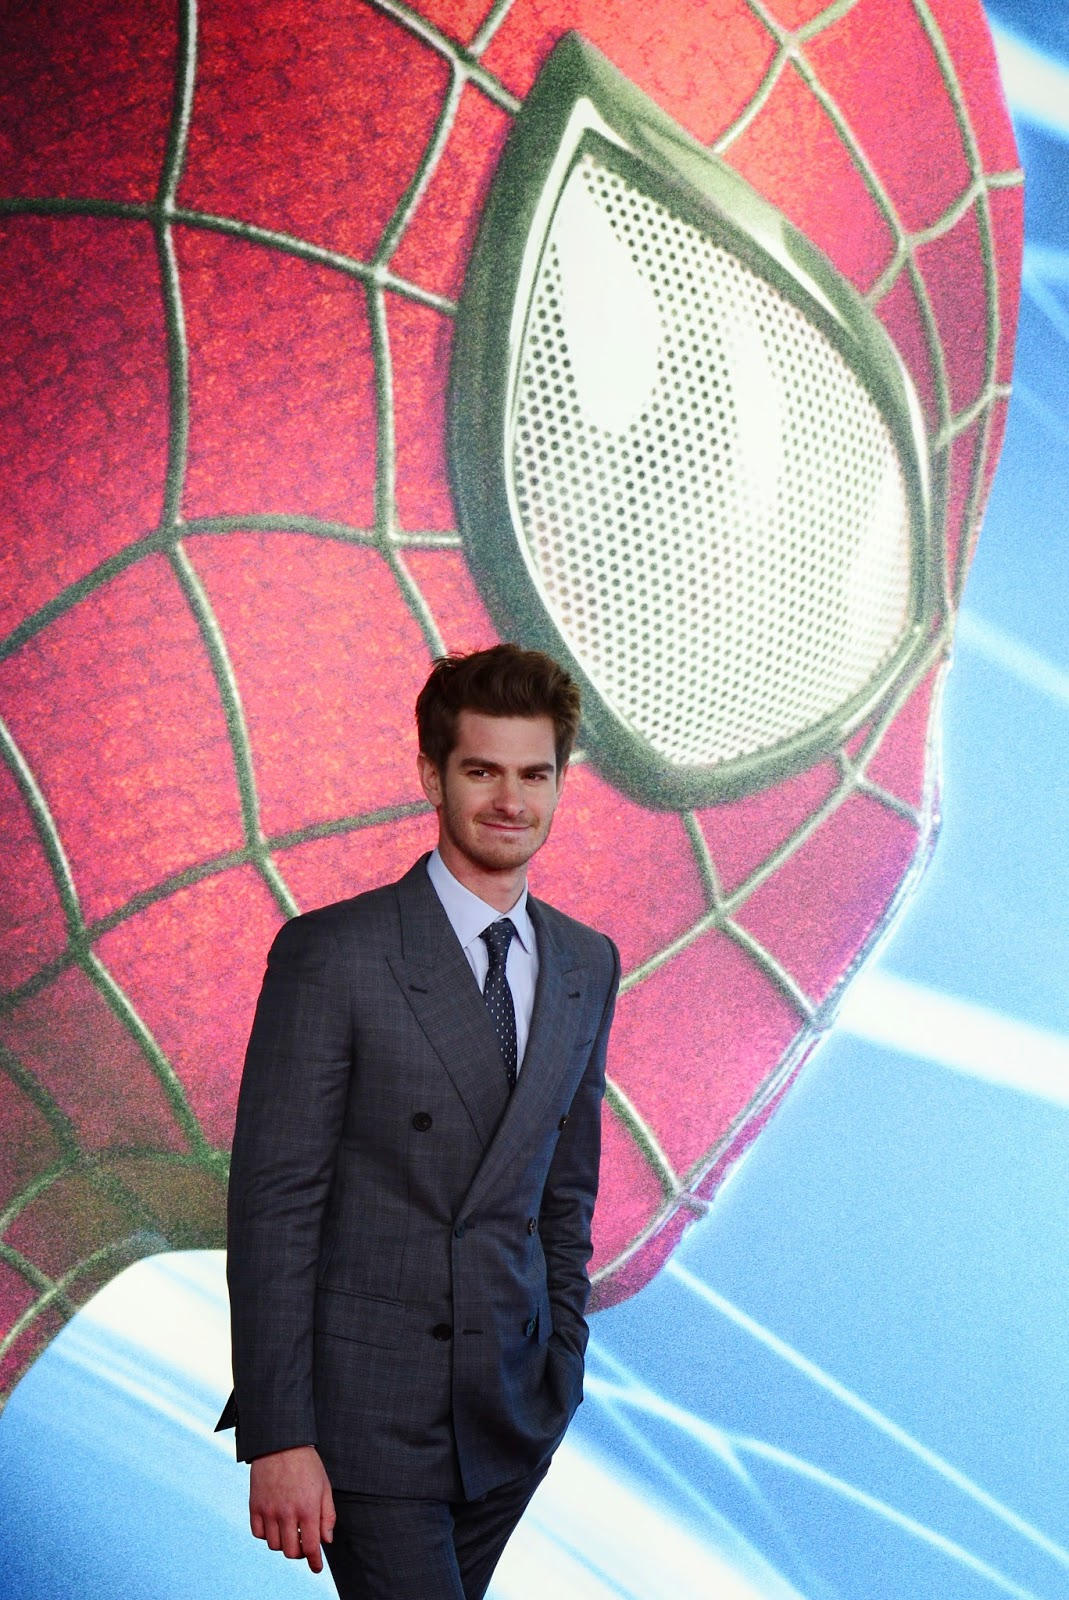 Amazing Spiderman, Amazing Spiderman 2, Andrew Garfield, Berlin, Dane DeHaan, Emma Stone, Entertainment, Germany, Hollywood, Jamie Foxx, Marc Webb, Matthew Tolmach, Movie Premiere, Movies, Rise of Electro, Showbiz, Hollywood Actress, Hollywood Actors,